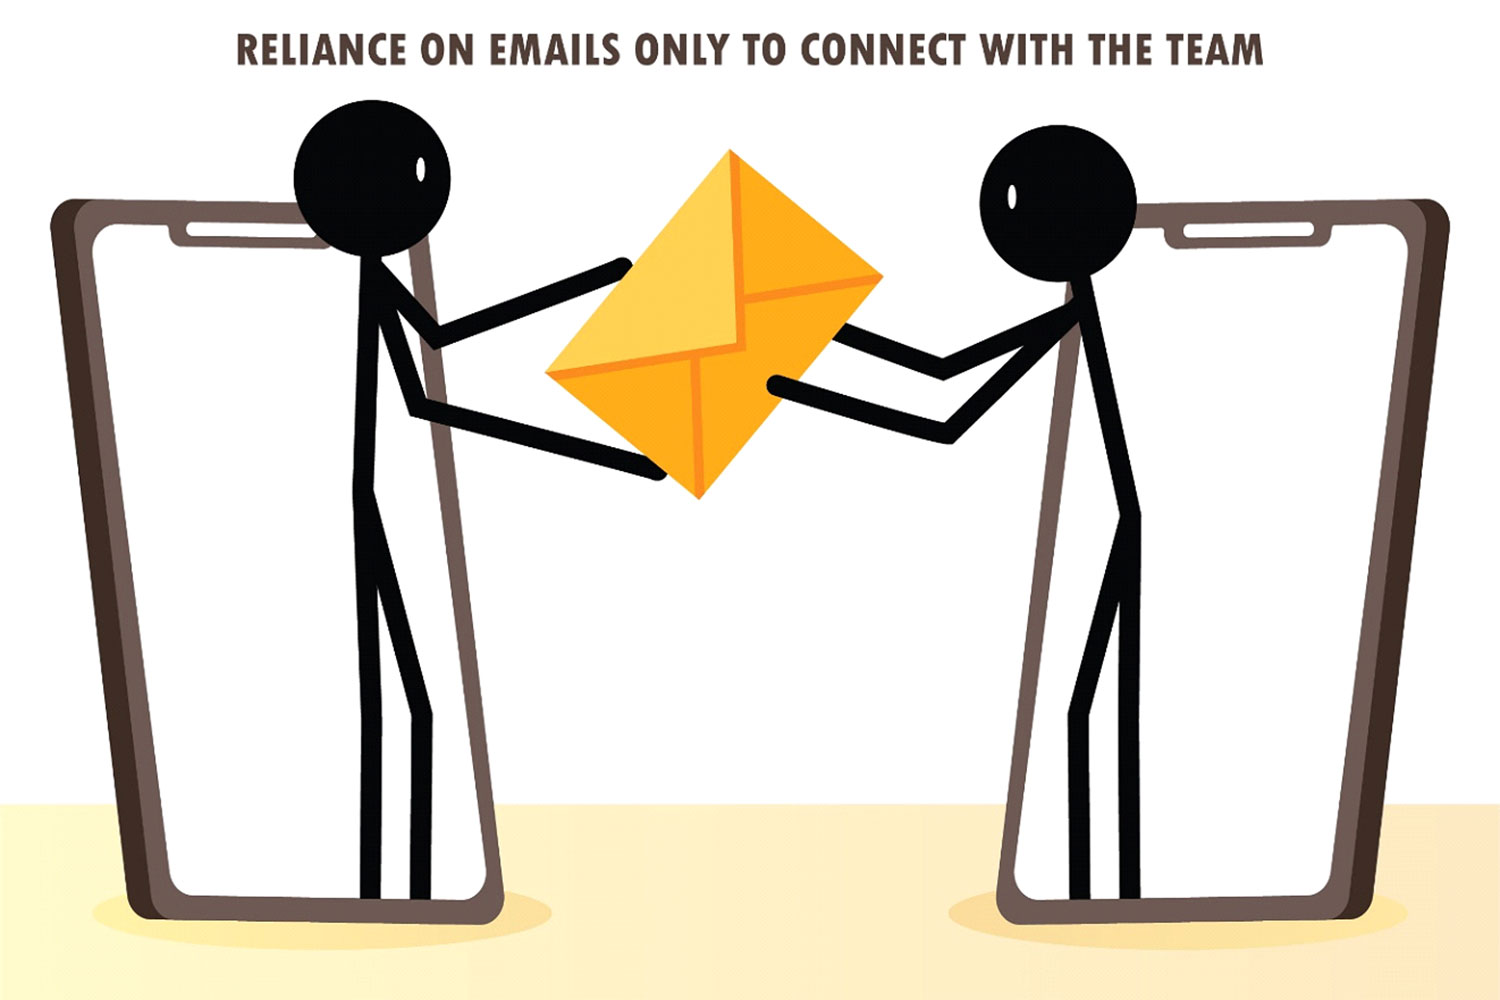 RELIANCE-ON-EMAILS-ONLY-TO-CONNECT-WITH-THE-TEAM.jpg